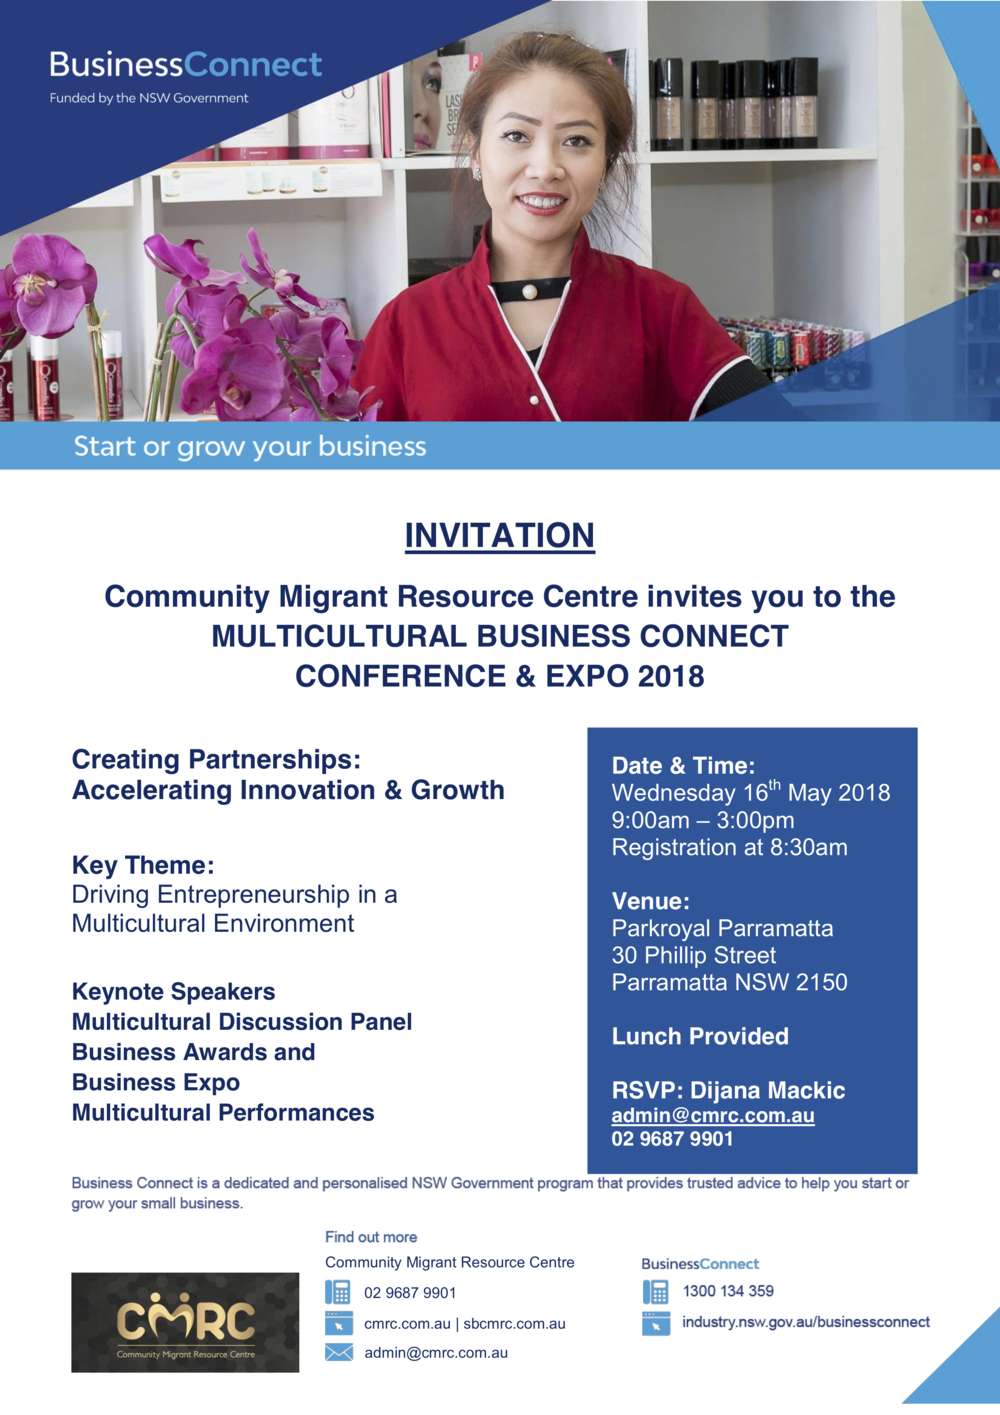 Invitation-Multicultural Business Connect Conference and Expo 2018.png